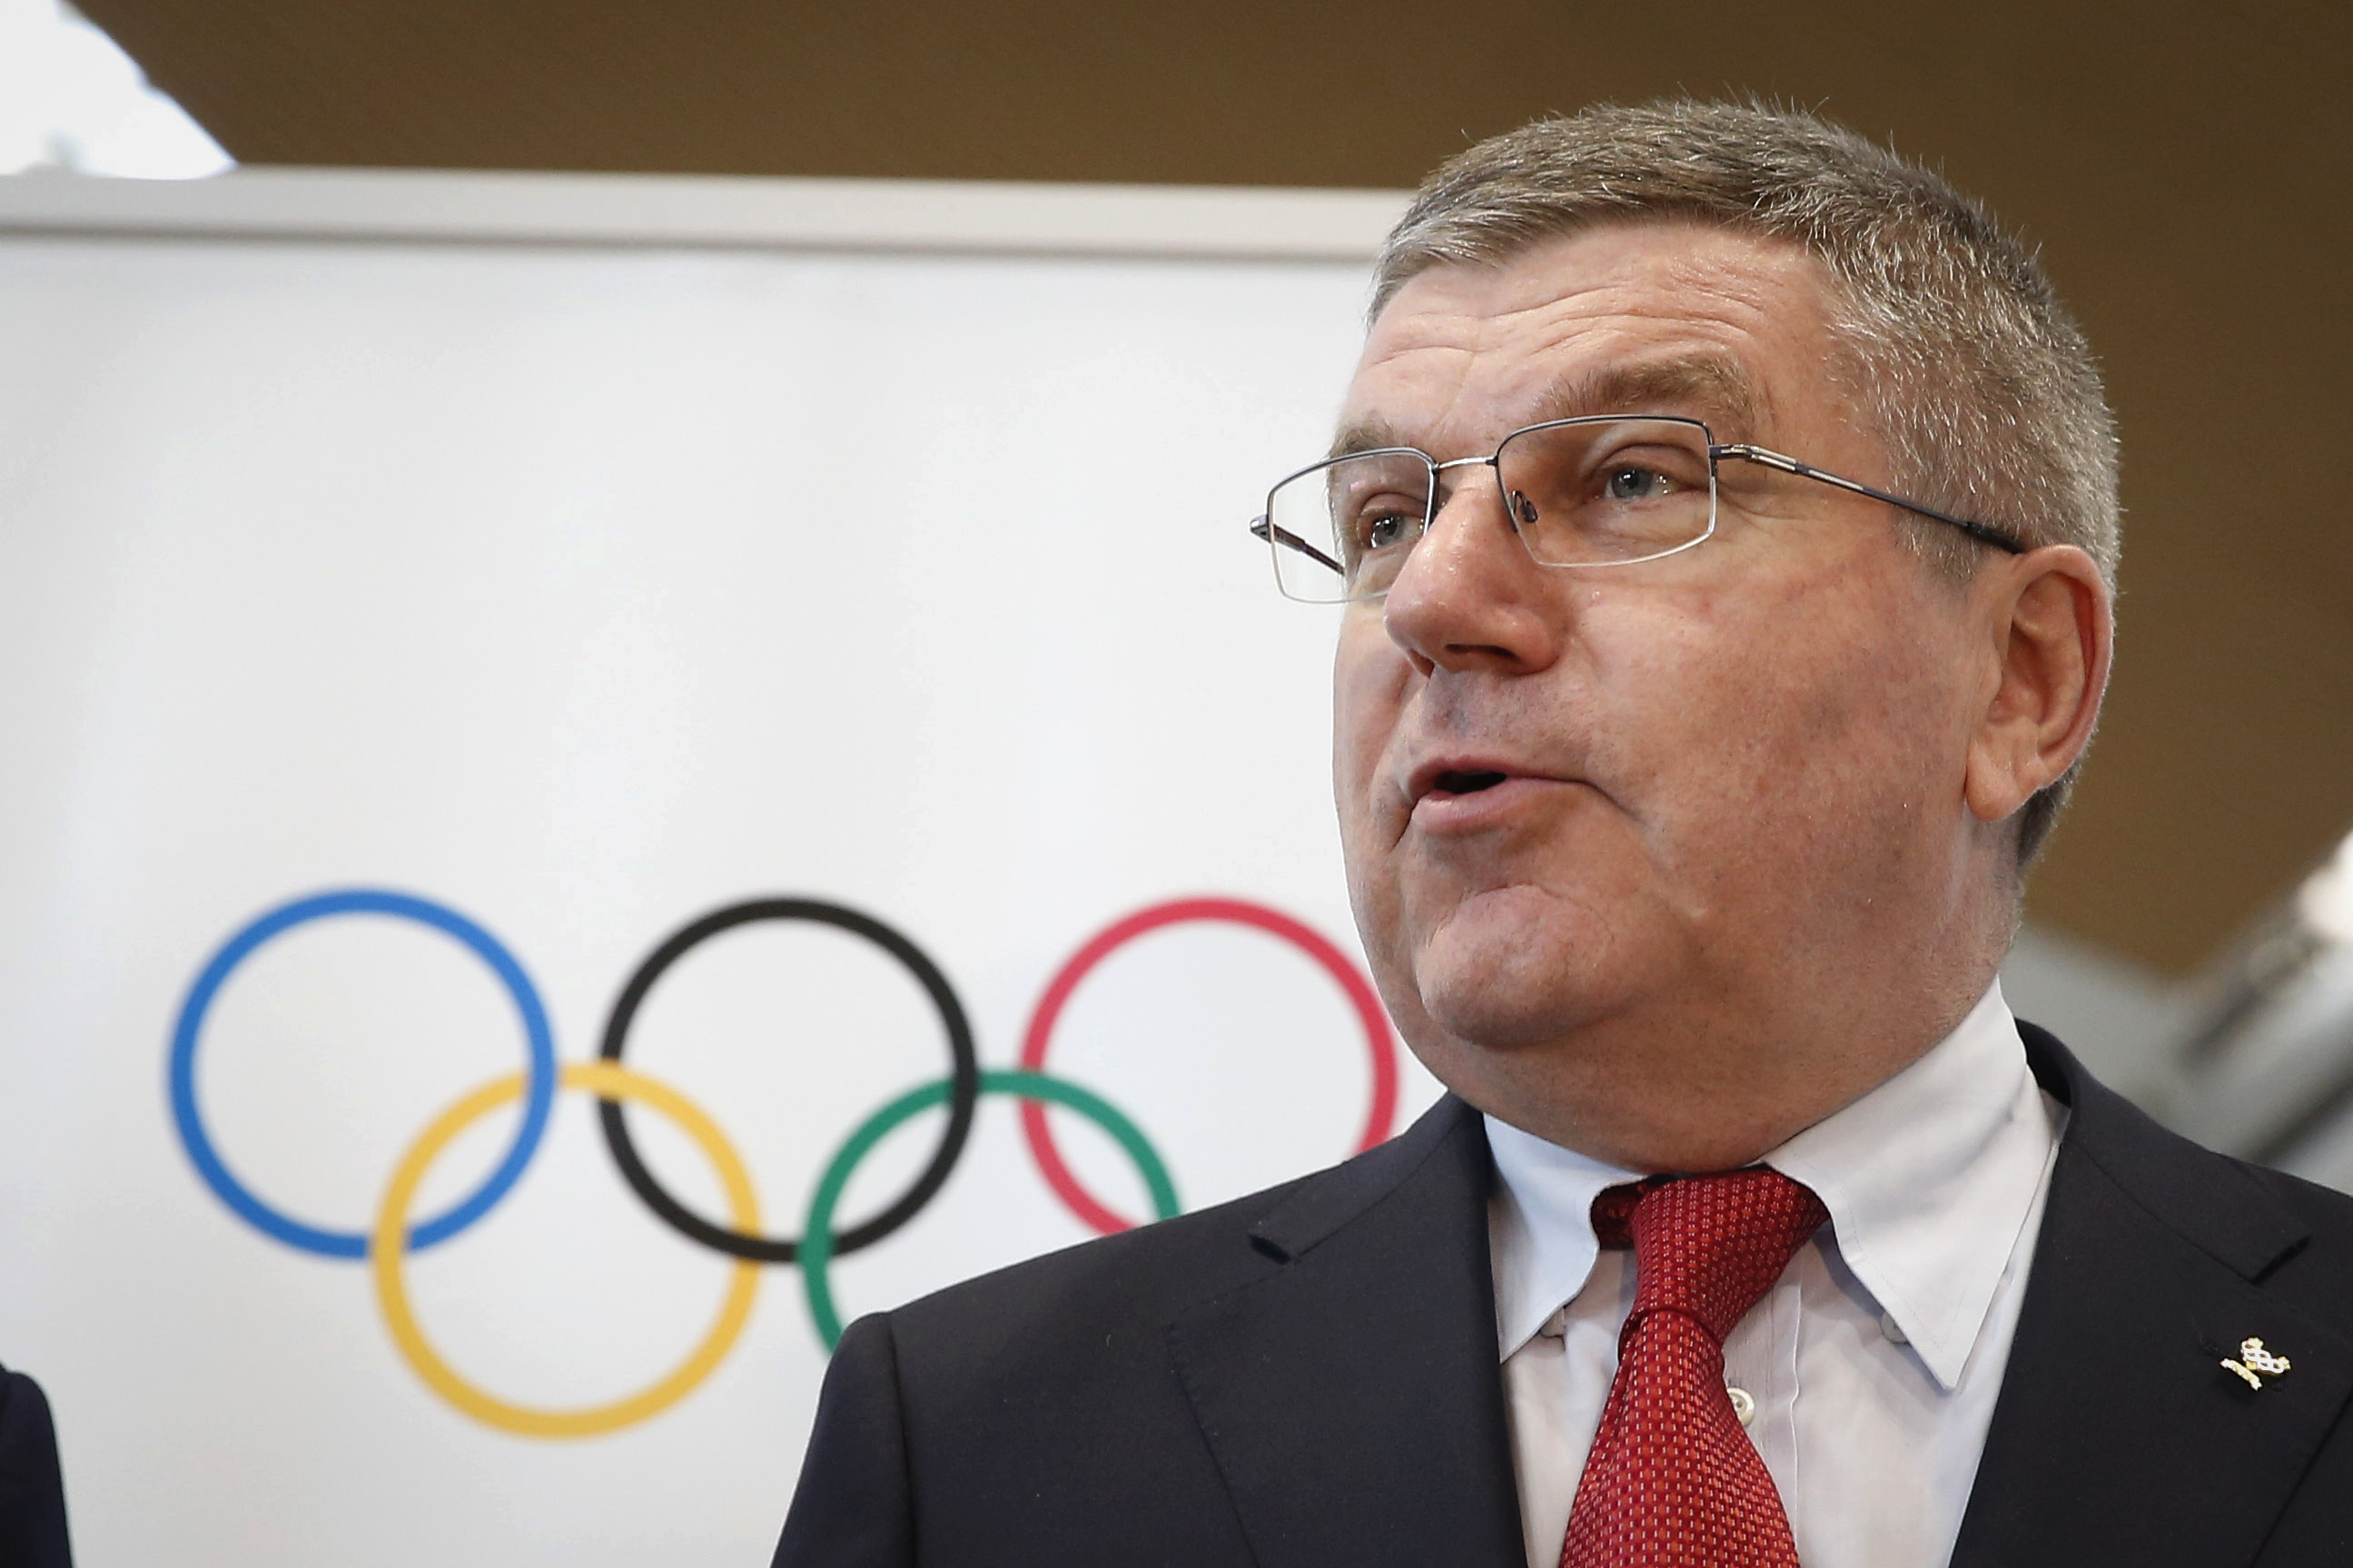 Thomas Bach, president of the International Olympic Committee (IOC) speaks to the media during a photo call at Kuala Lumpur International Airport in Sepang, Malaysia, on Friday, July 24, 2015. (AP Photo/Vincent Thian)